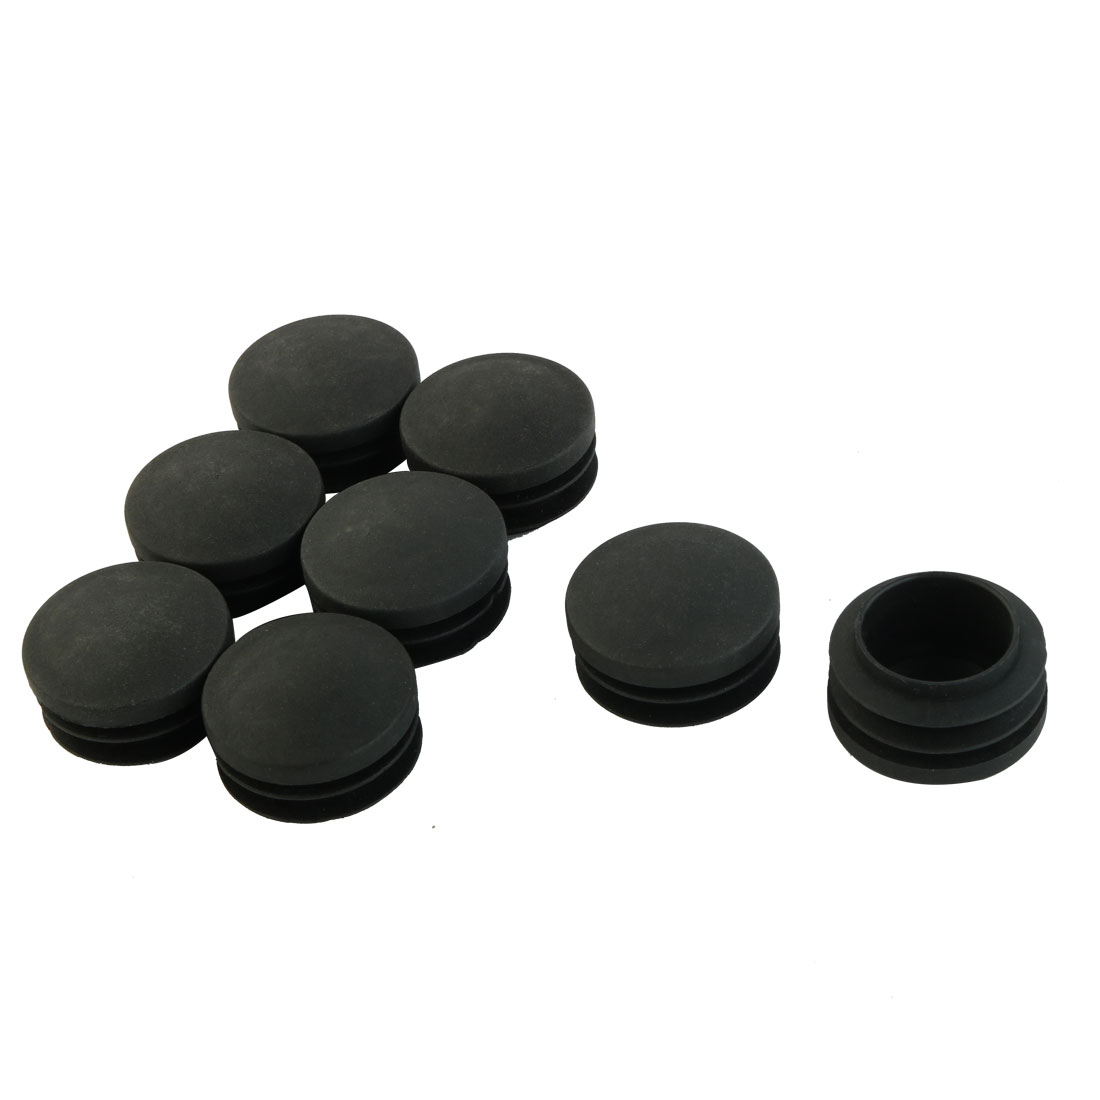 Furniture Table Chair Foot Plastic Round Tube Insert Cap Cover Black 35mm Dia 8pcs